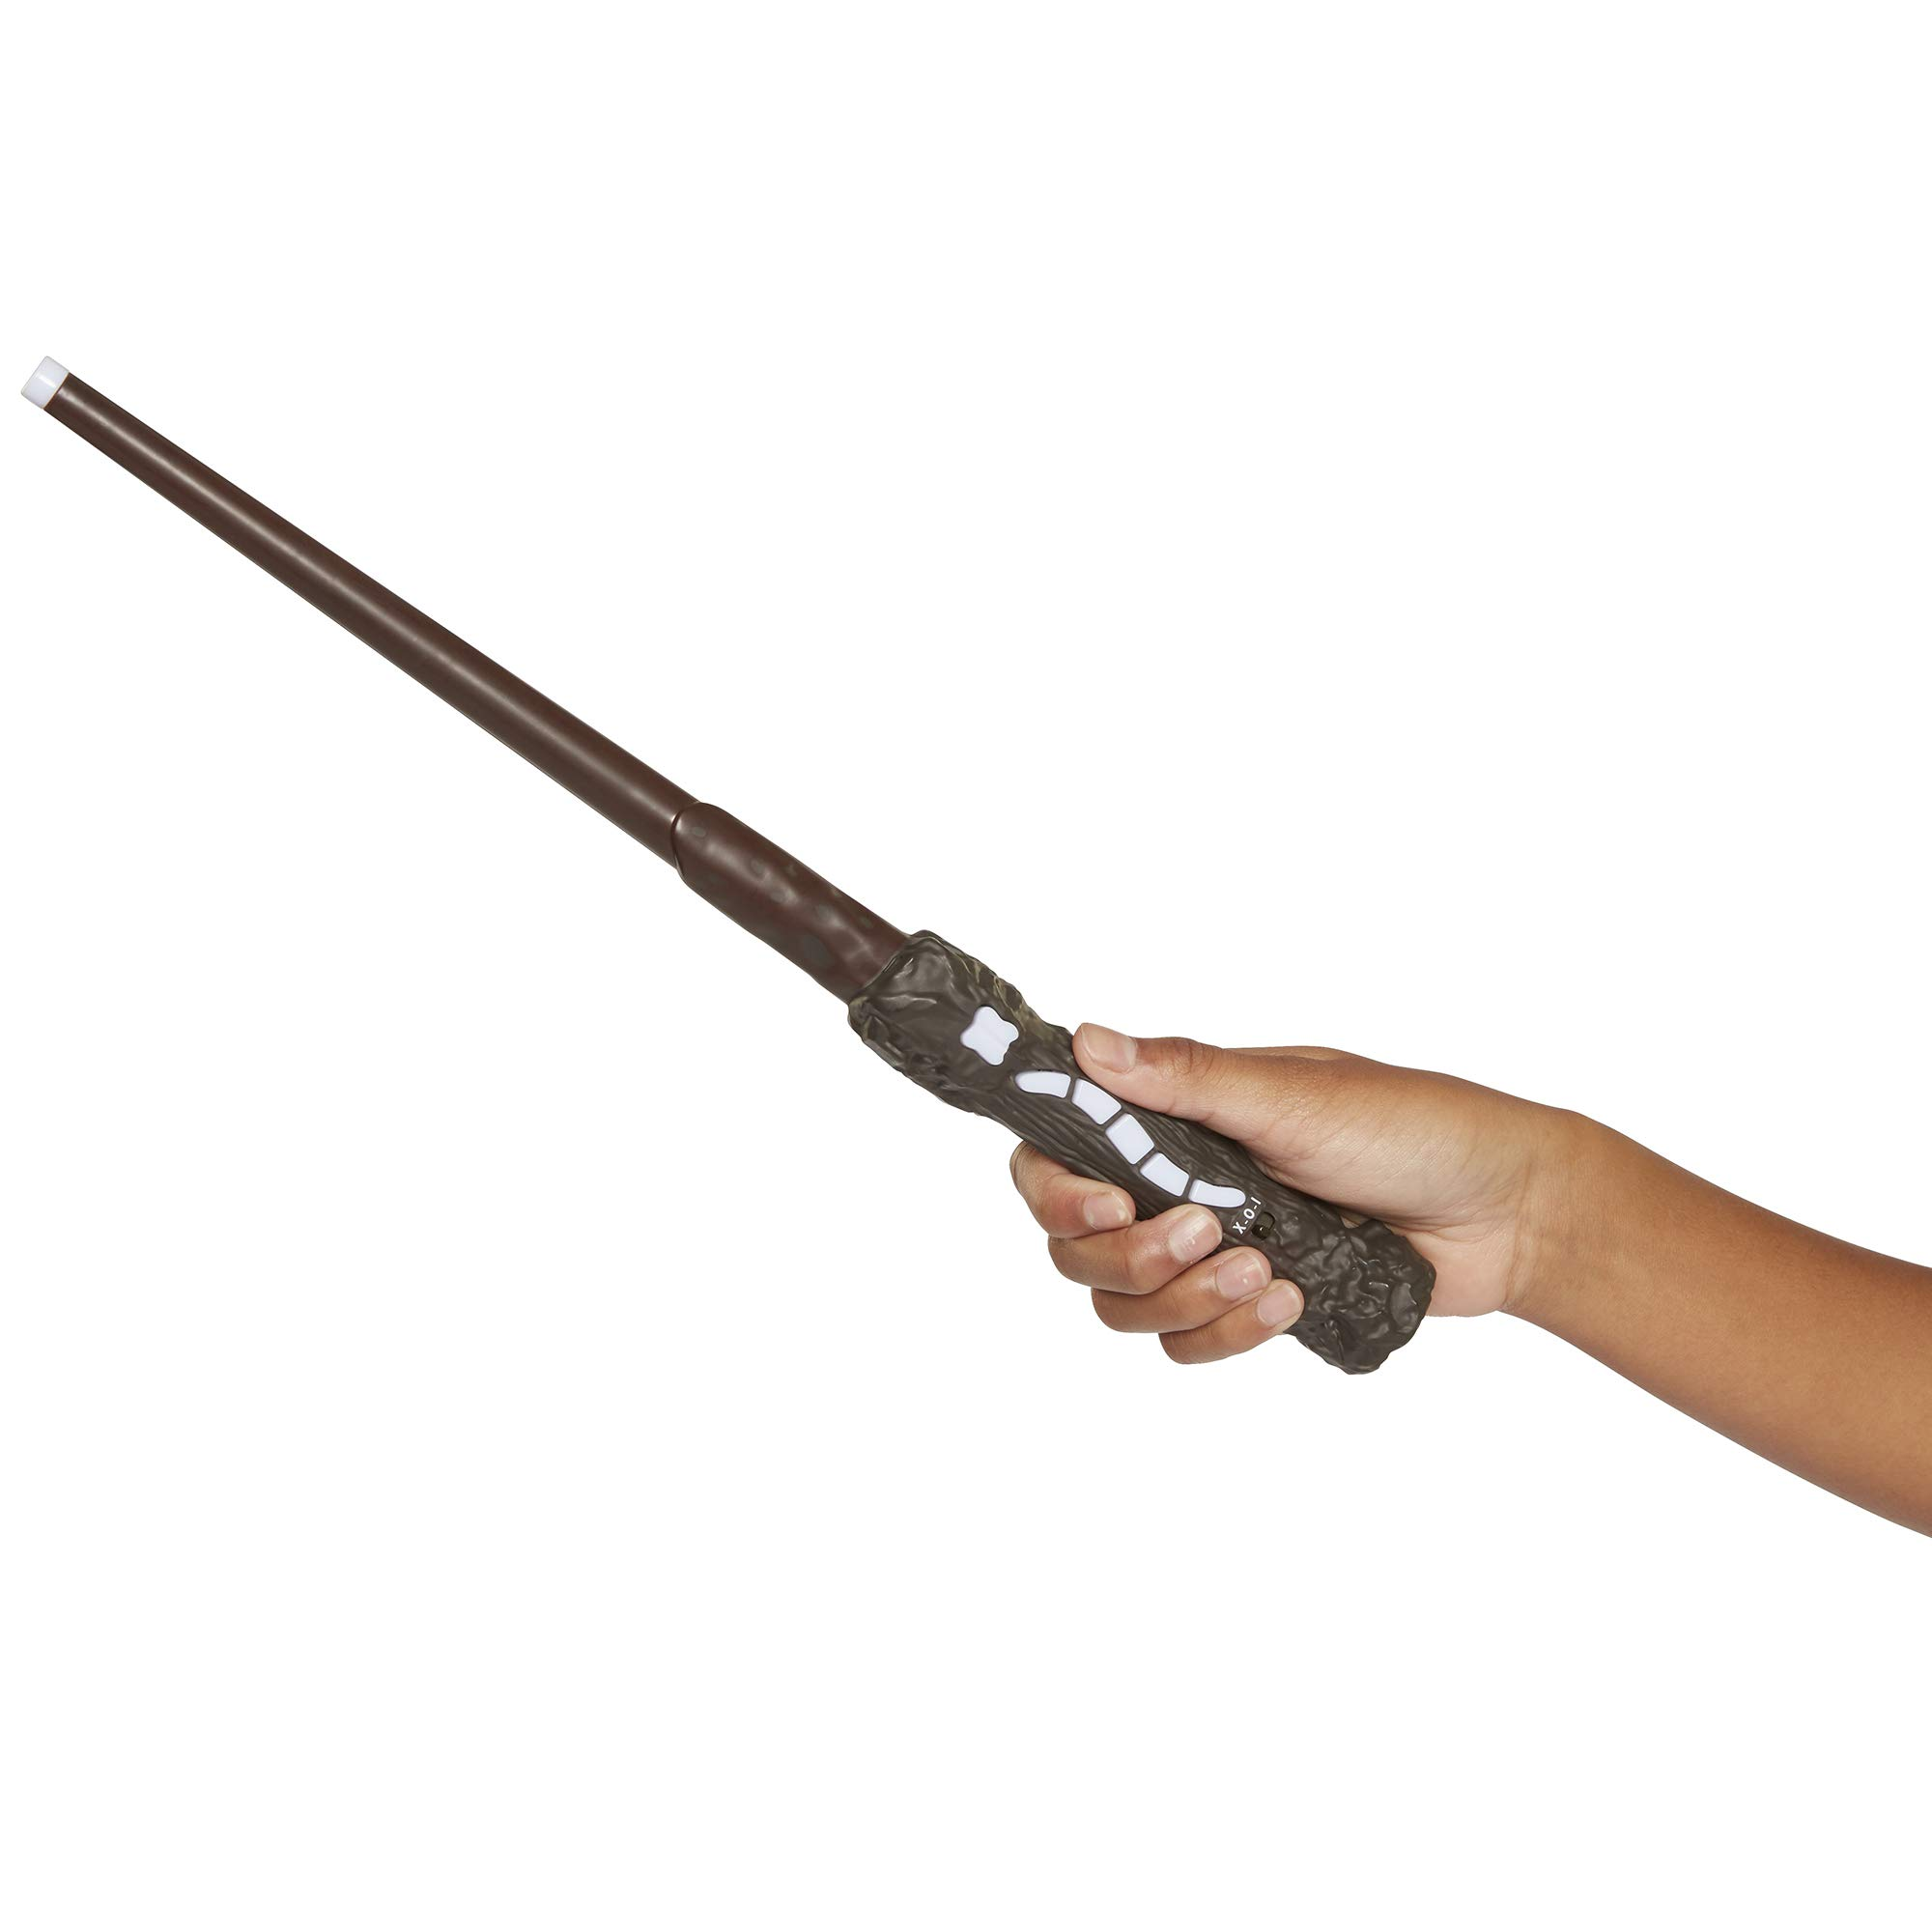 Harry Potter, Harry Potter's Wizard Training Wand - 11 SPELLS TO CAST! by HARRY POTTER (Image #10)